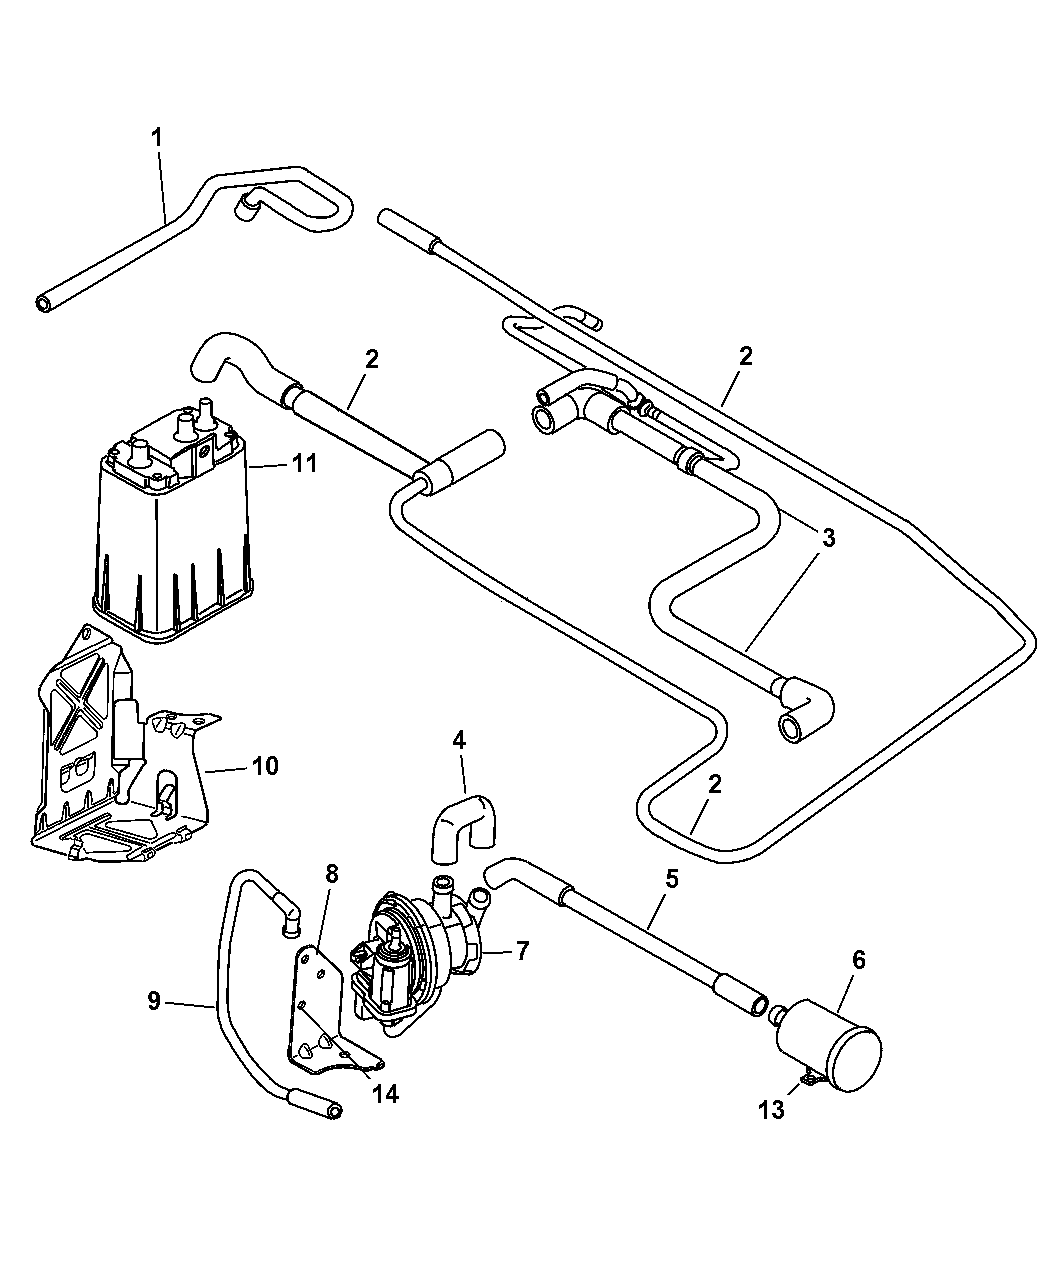 Pt Cruiser Emissions System Diagram Wiring Diagrams Site Cable Cable Geasparquet It